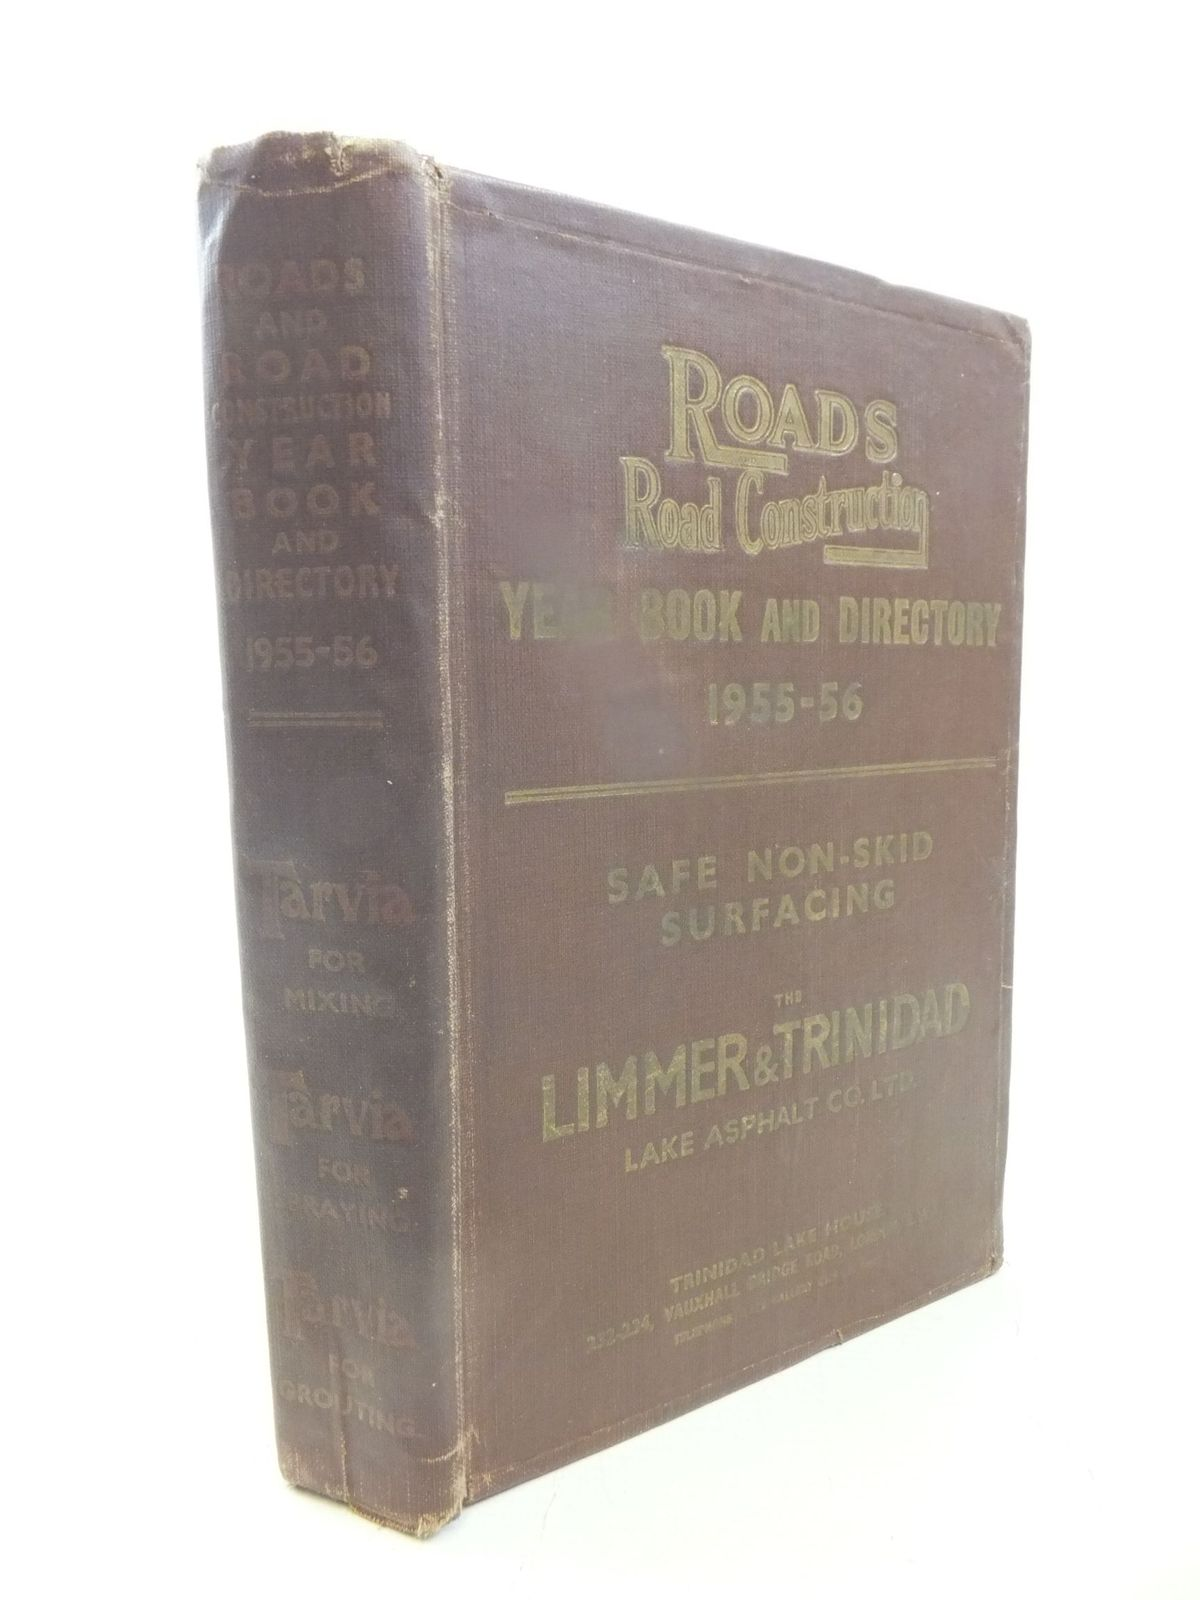 Photo of ROADS AND ROADS CONSTRUCTION YEAR BOOK & DIRECTORY 1955-56 published by The Carriers Publishing Company Limited (STOCK CODE: 1711976)  for sale by Stella & Rose's Books